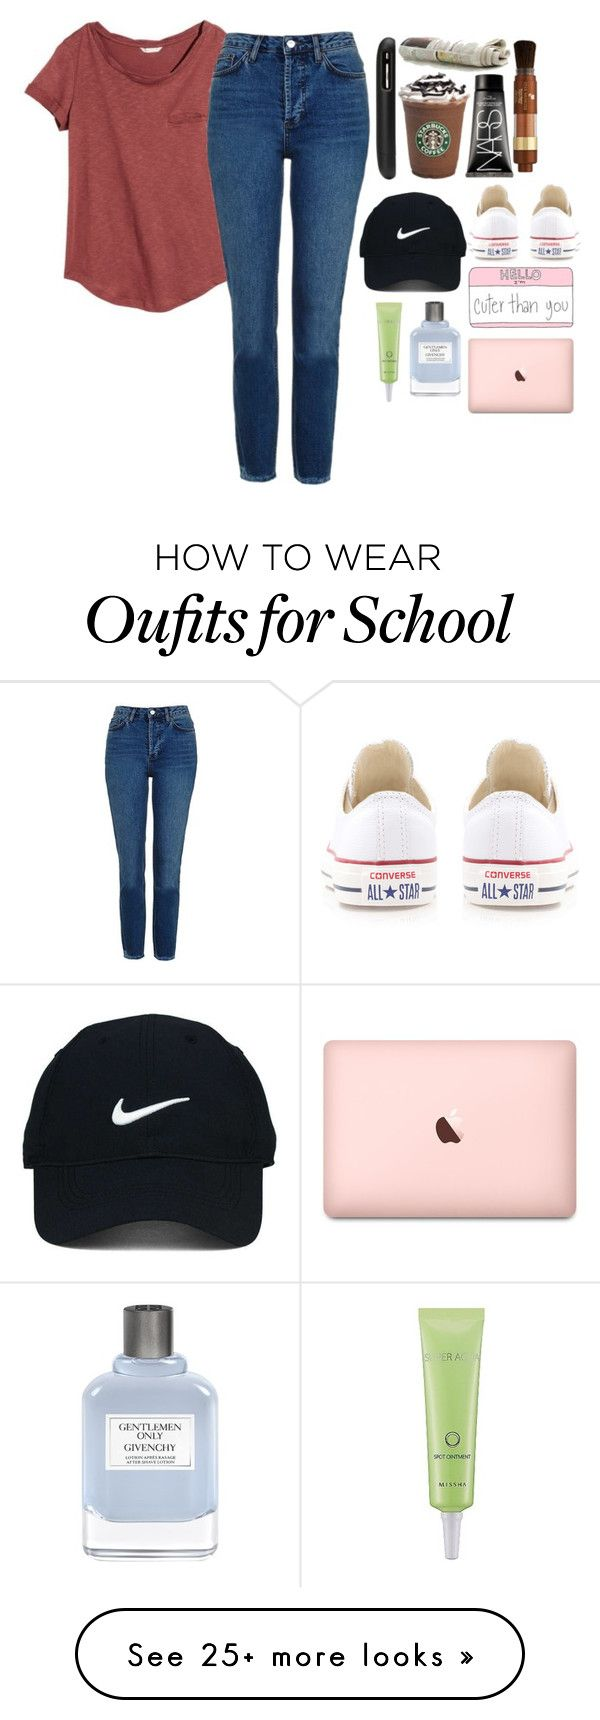 """Starting school in 1 week"" by zmommyandme on Polyvore featuring H&M, Topshop, Lauren Conrad, Nike Golf, Converse, Givenchy and Missha"